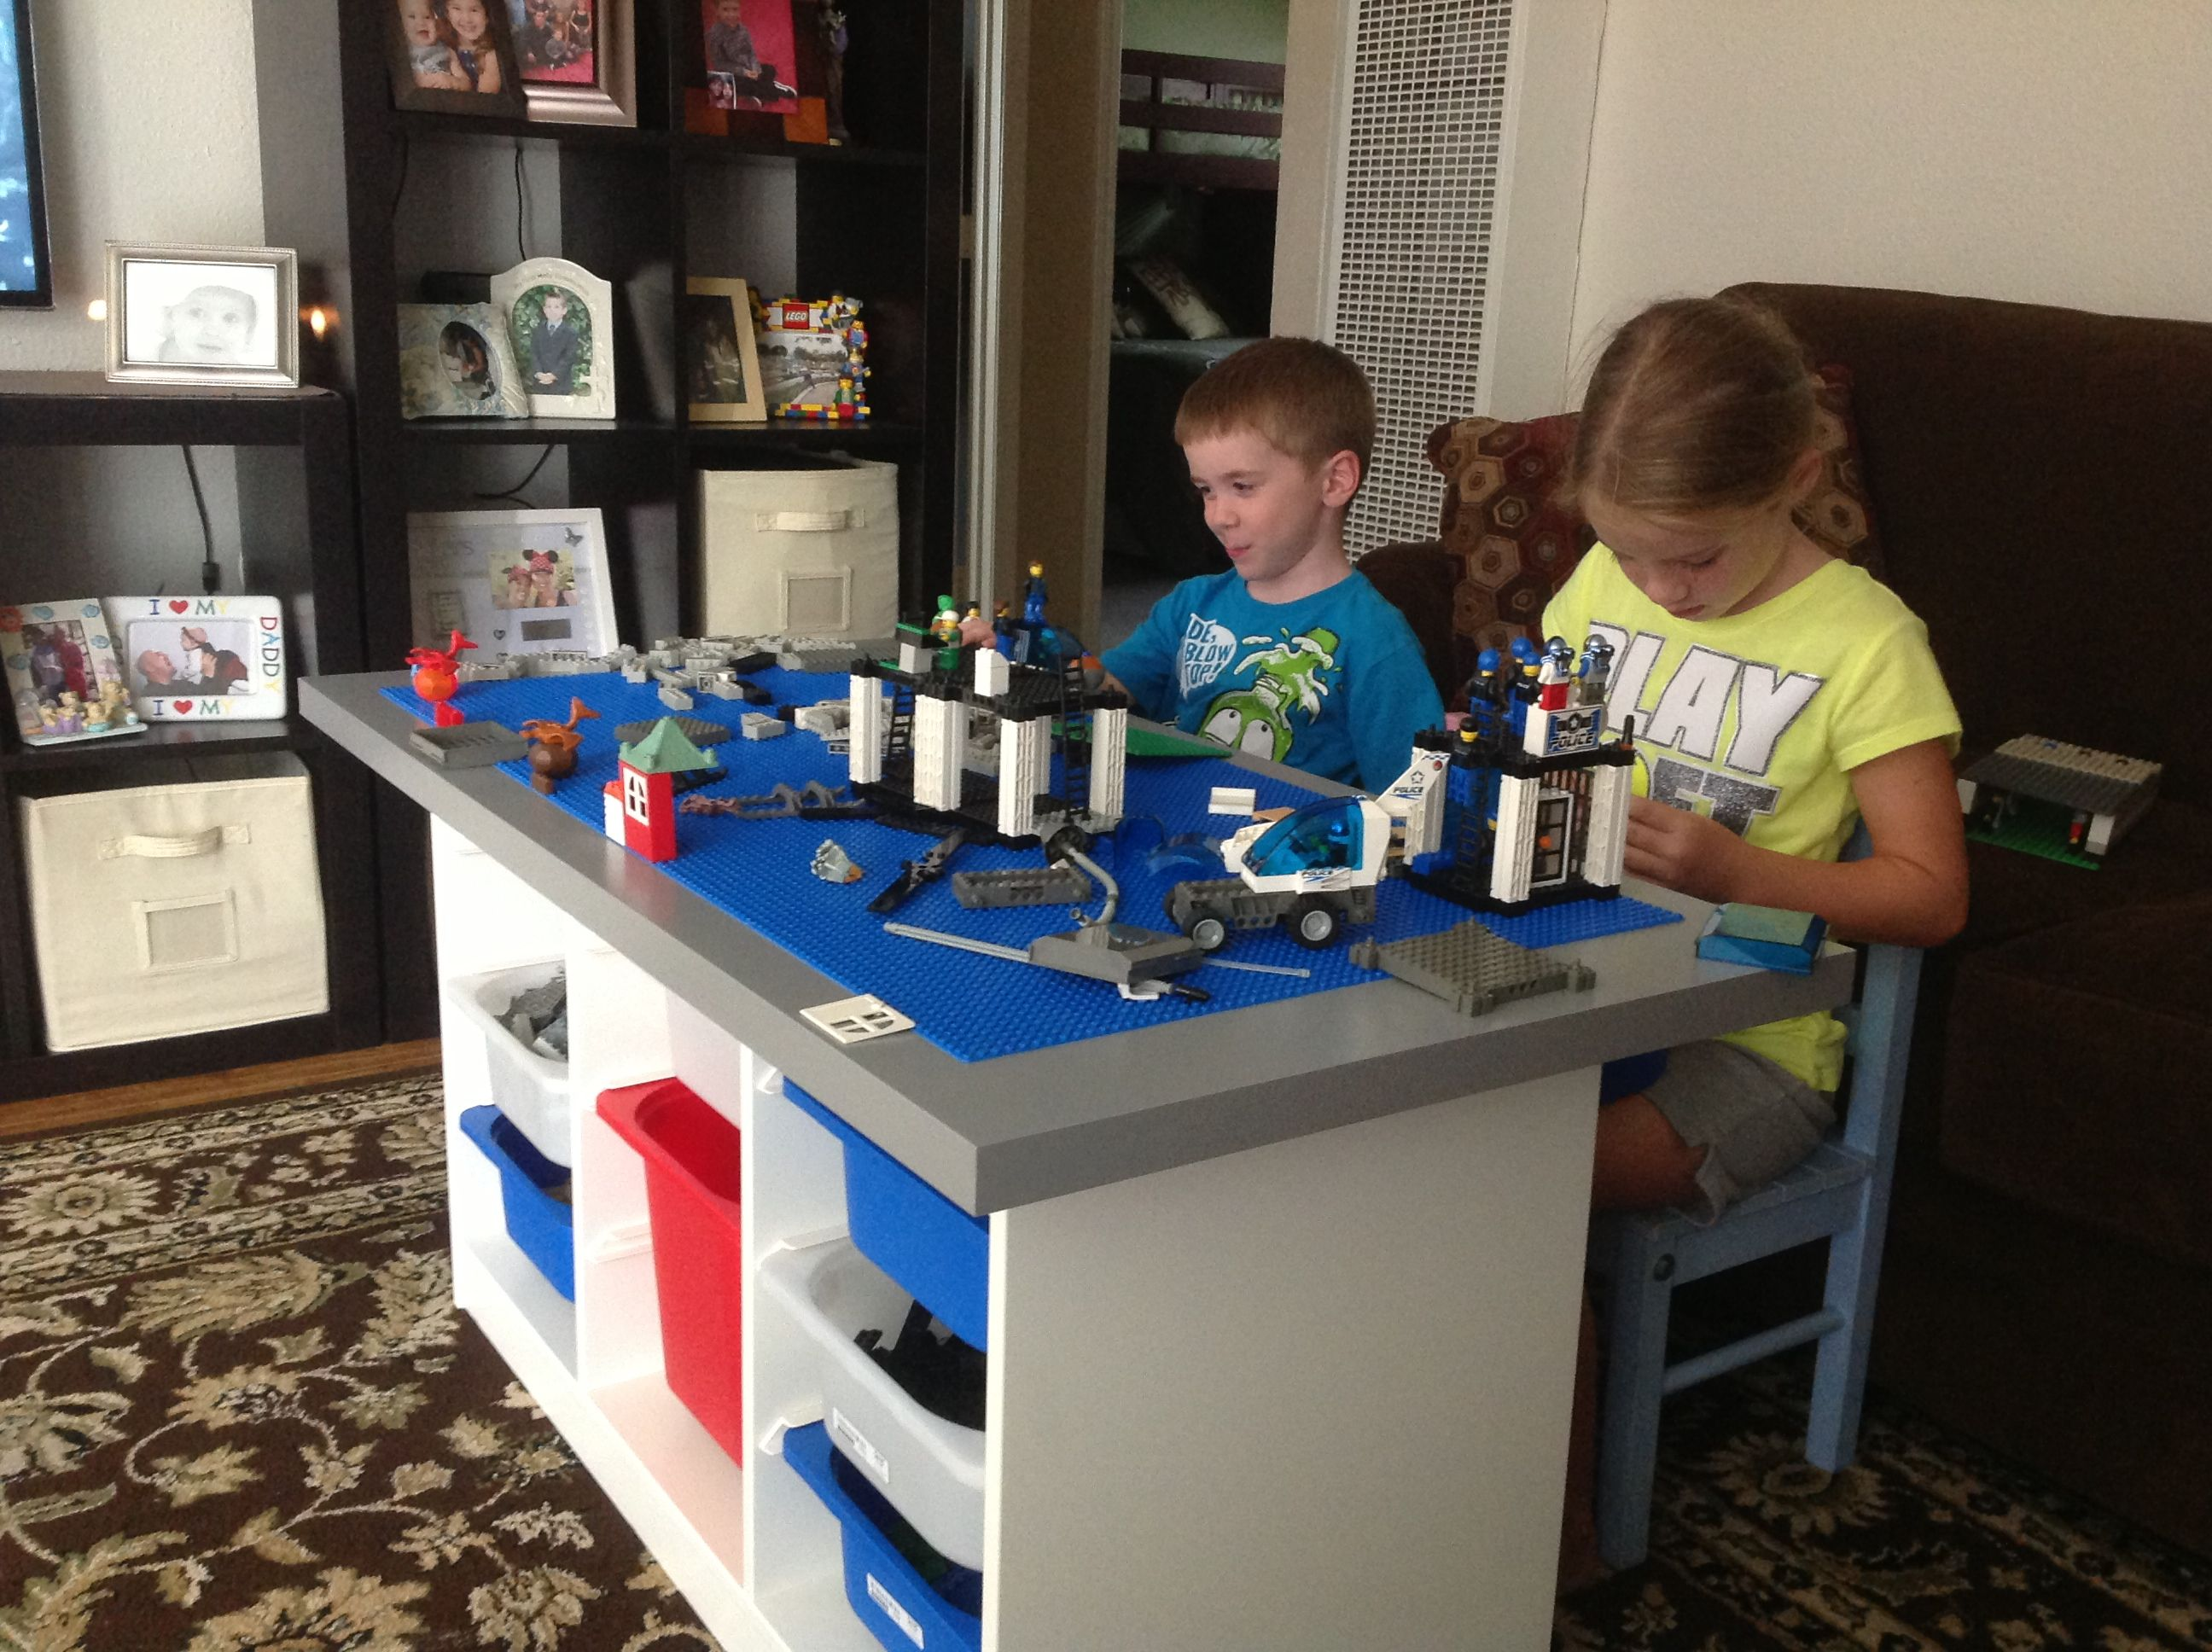 Attractive Lego Table Made From Ikea $150.00 I Purchased The Trofast White Unit For  39.99, The